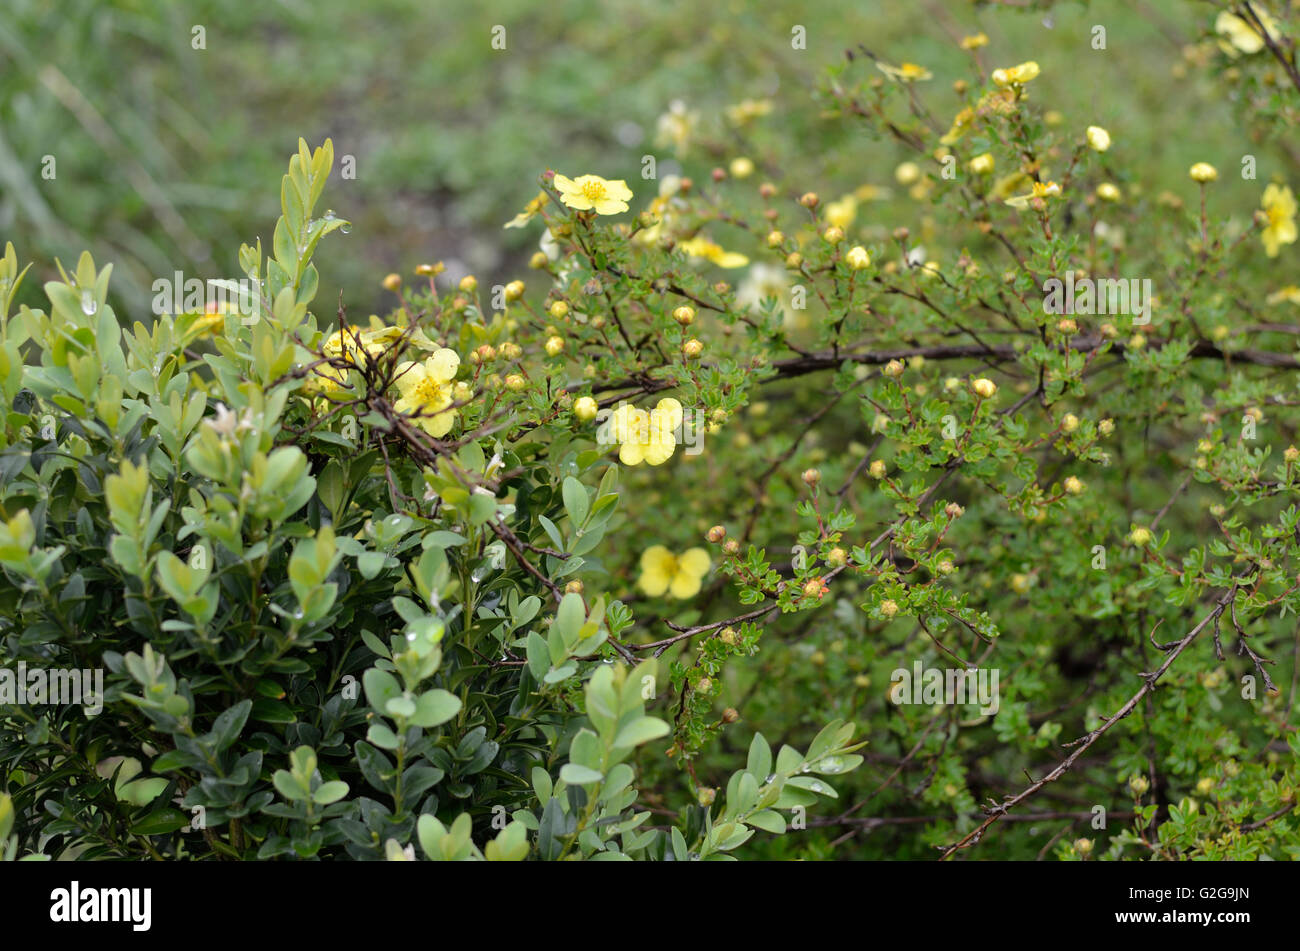 Bush with small yellow flowers in spring time stock photo 104850333 bush with small yellow flowers in spring time mightylinksfo